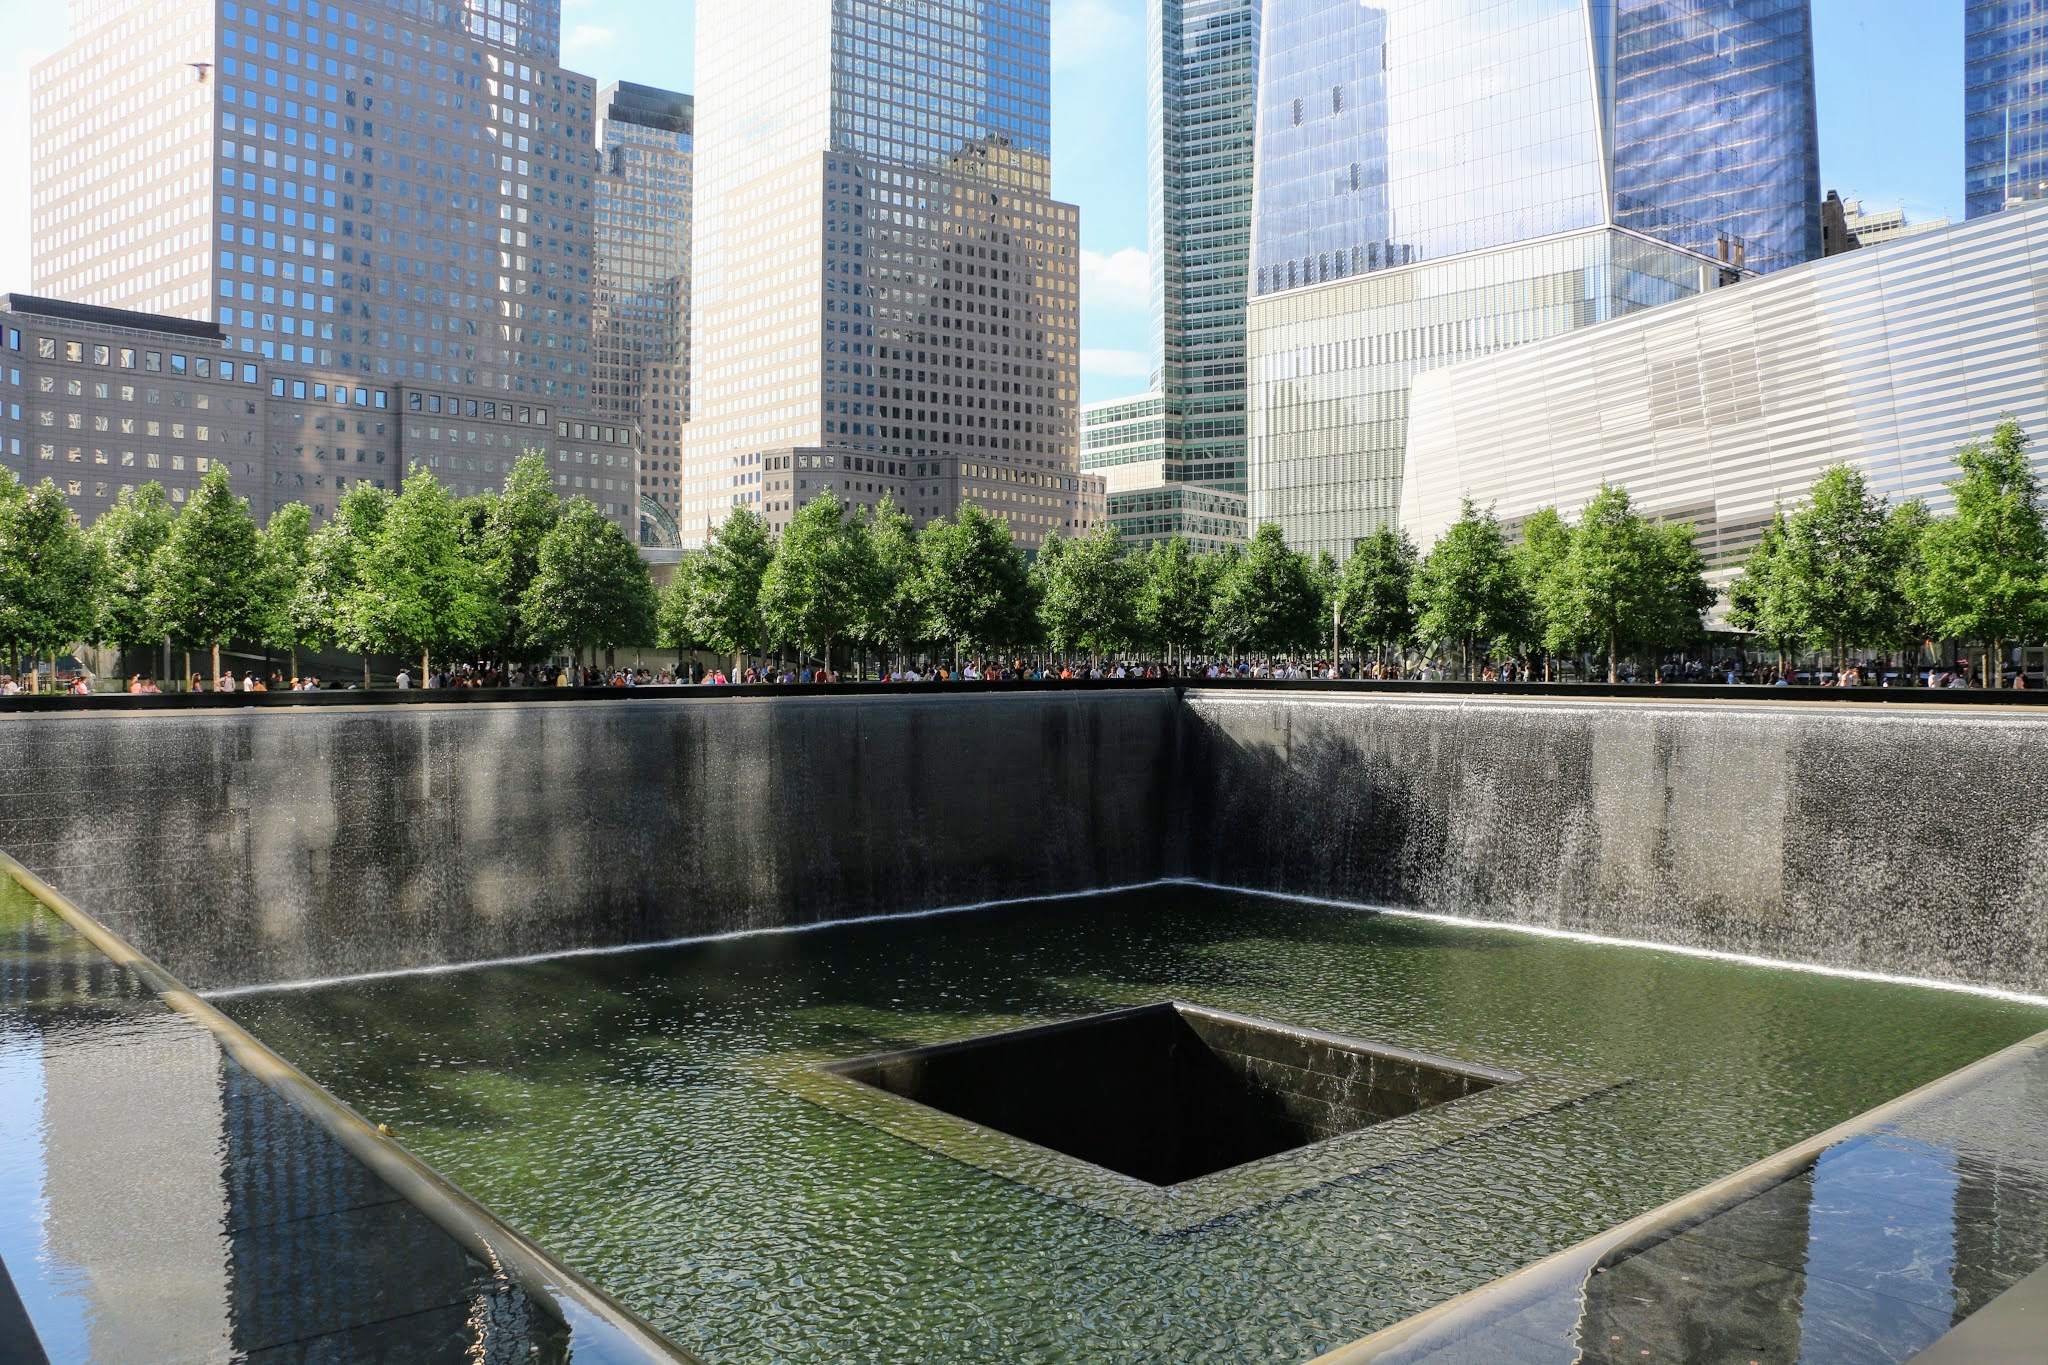 9/11 Memorial-monument in New York